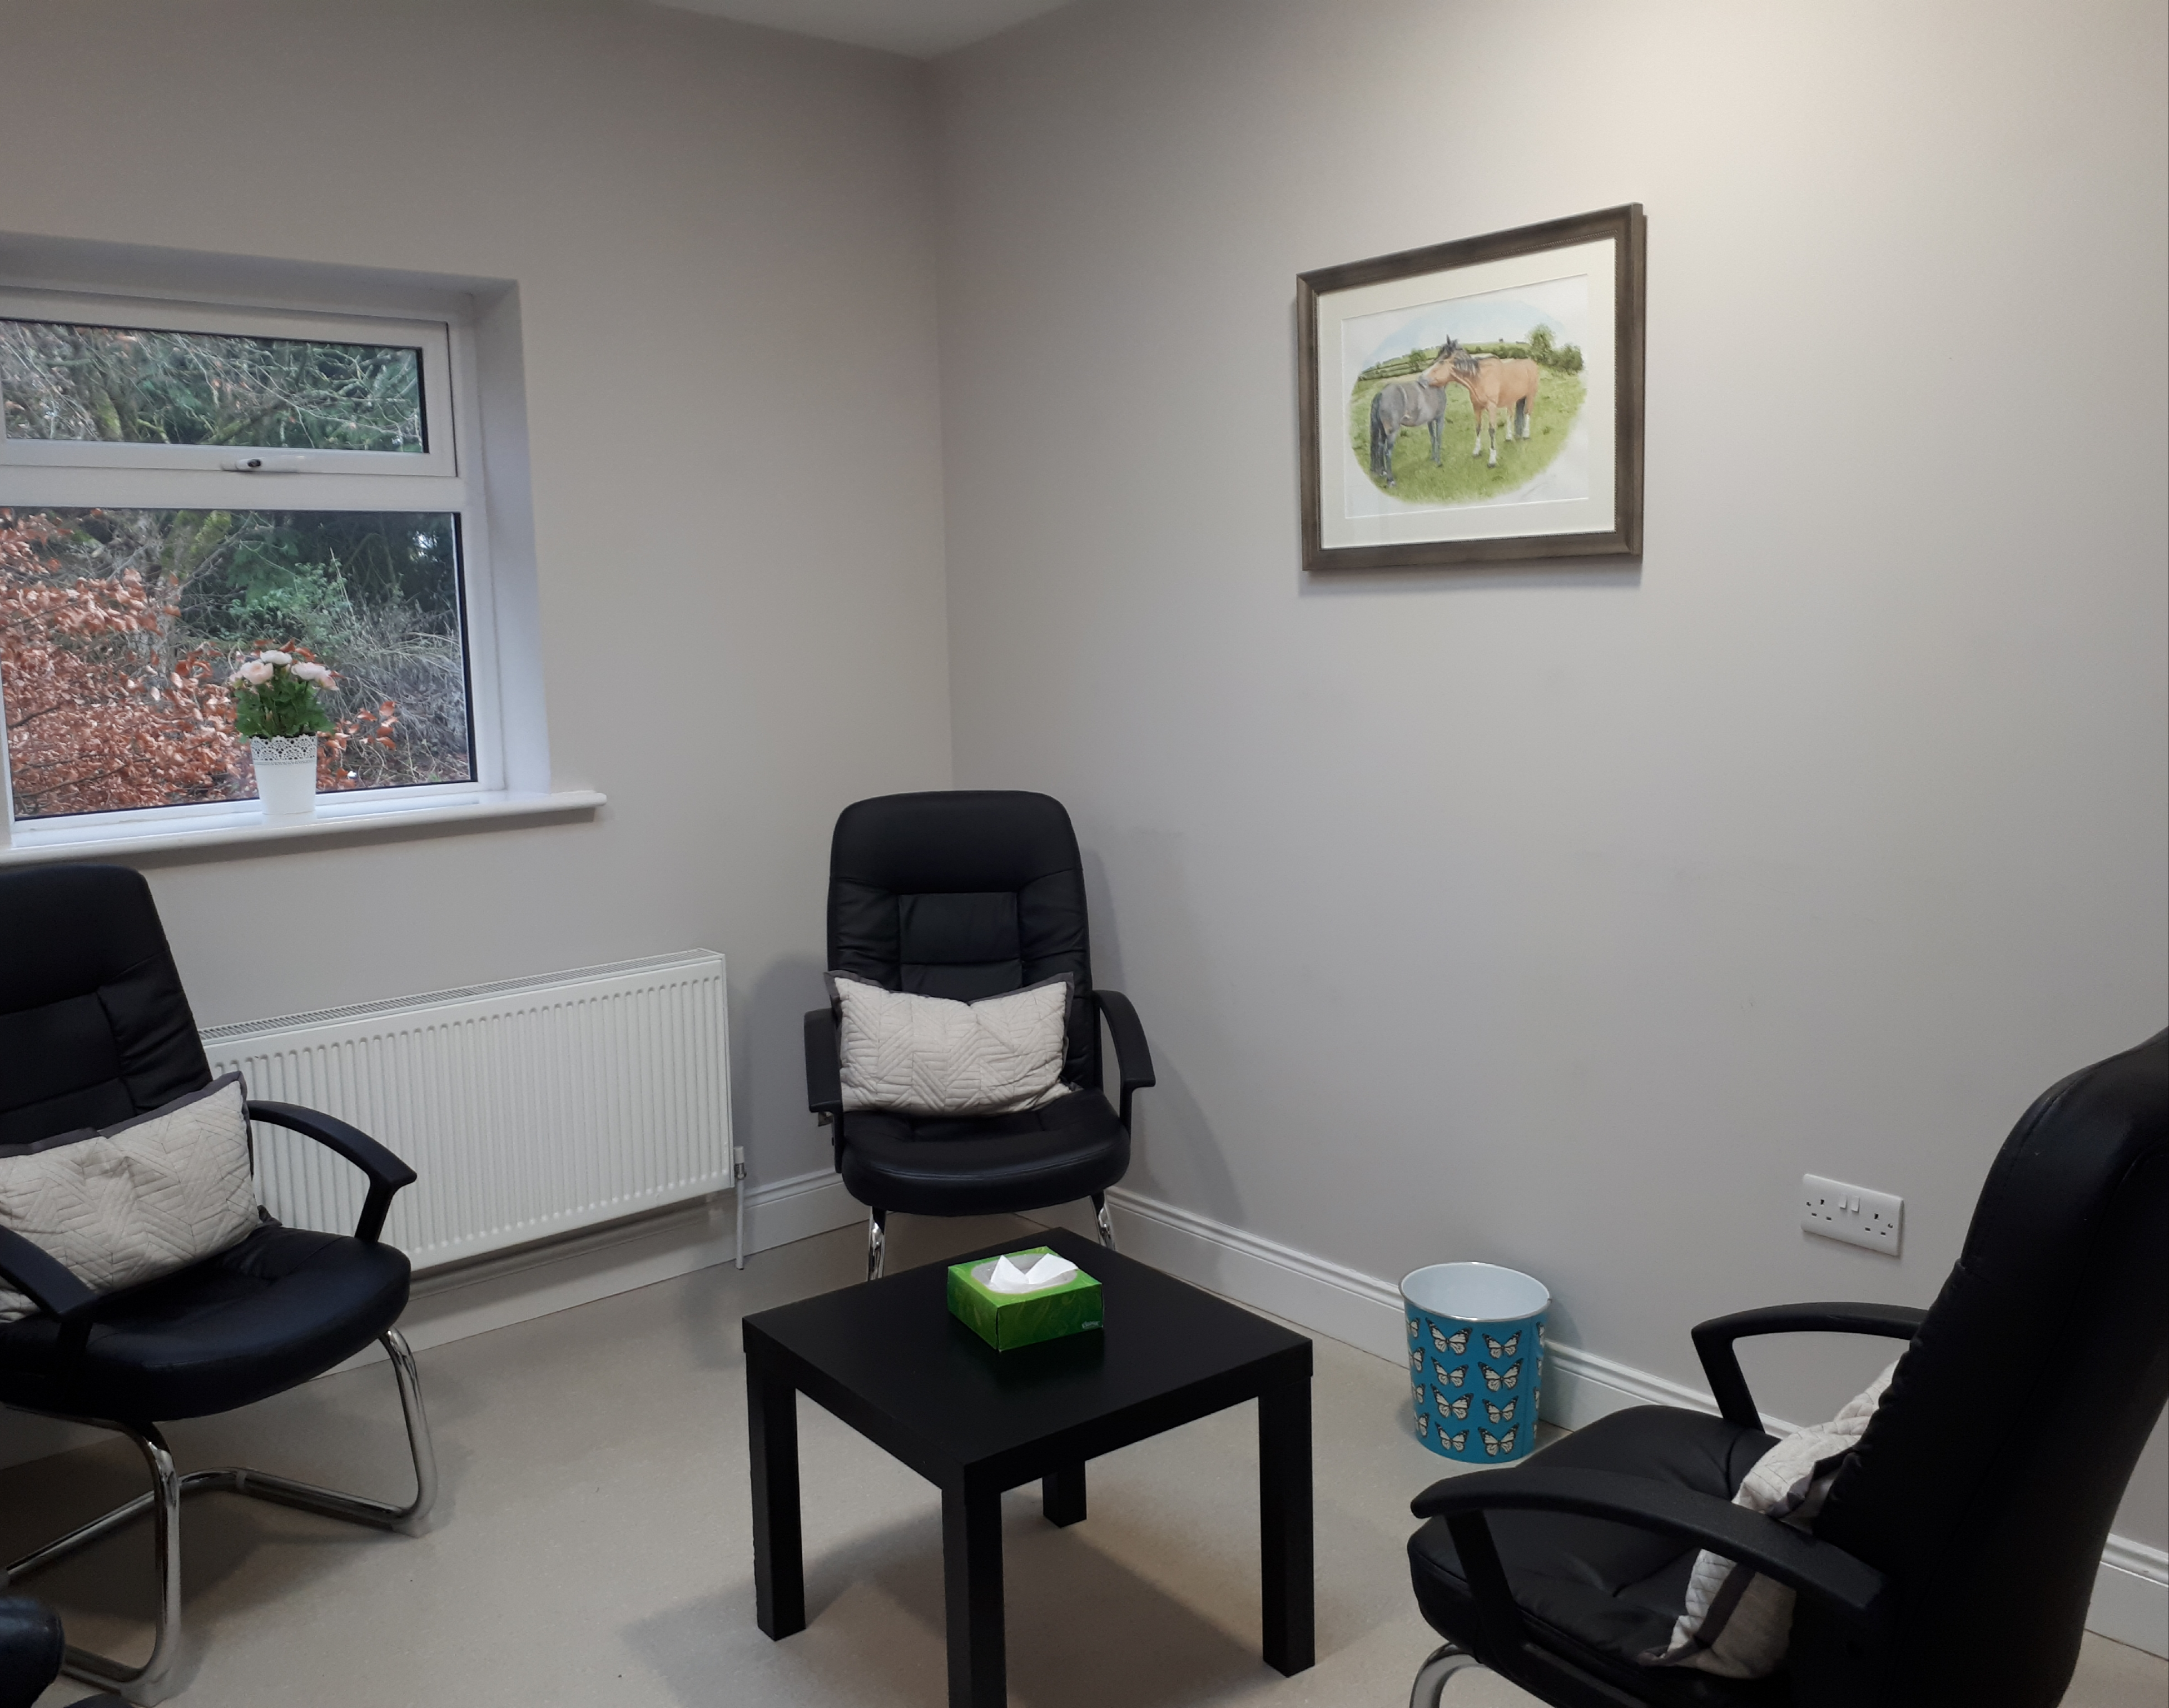 Northstar Counselling Therapy Room Roscrea Tipperary